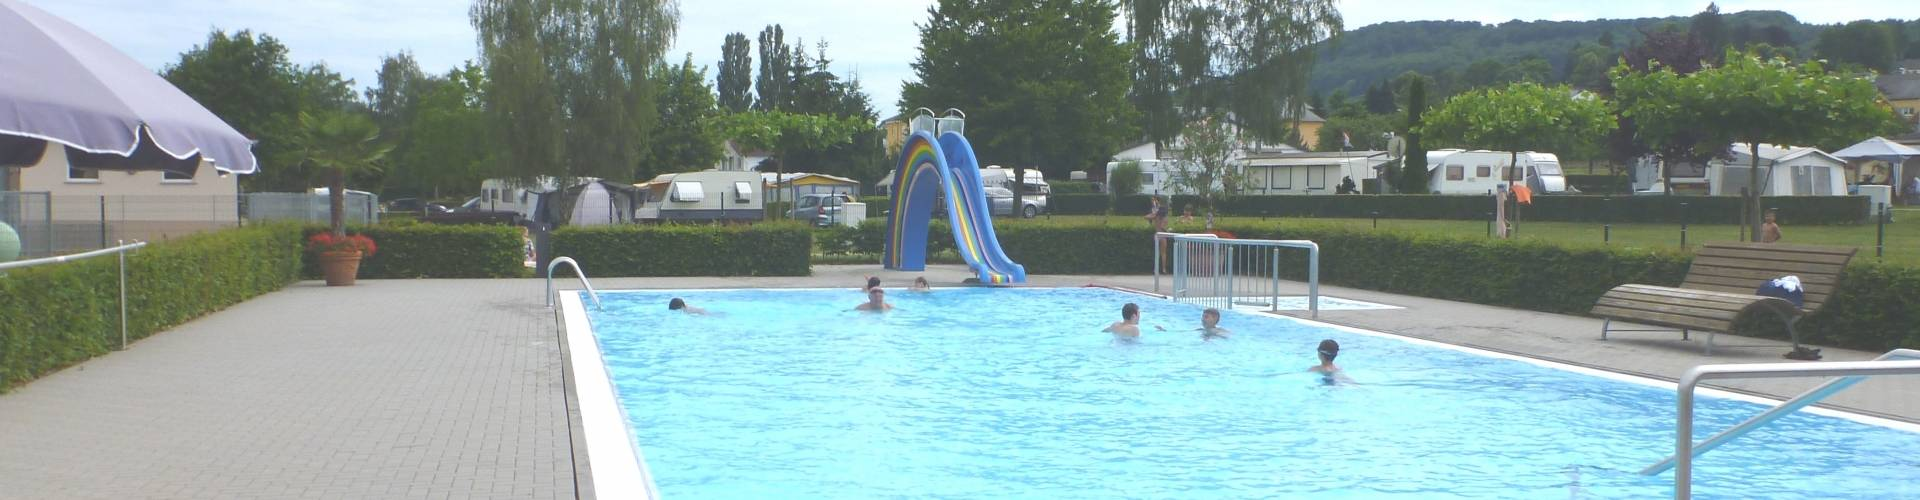 piscine plein air rosport